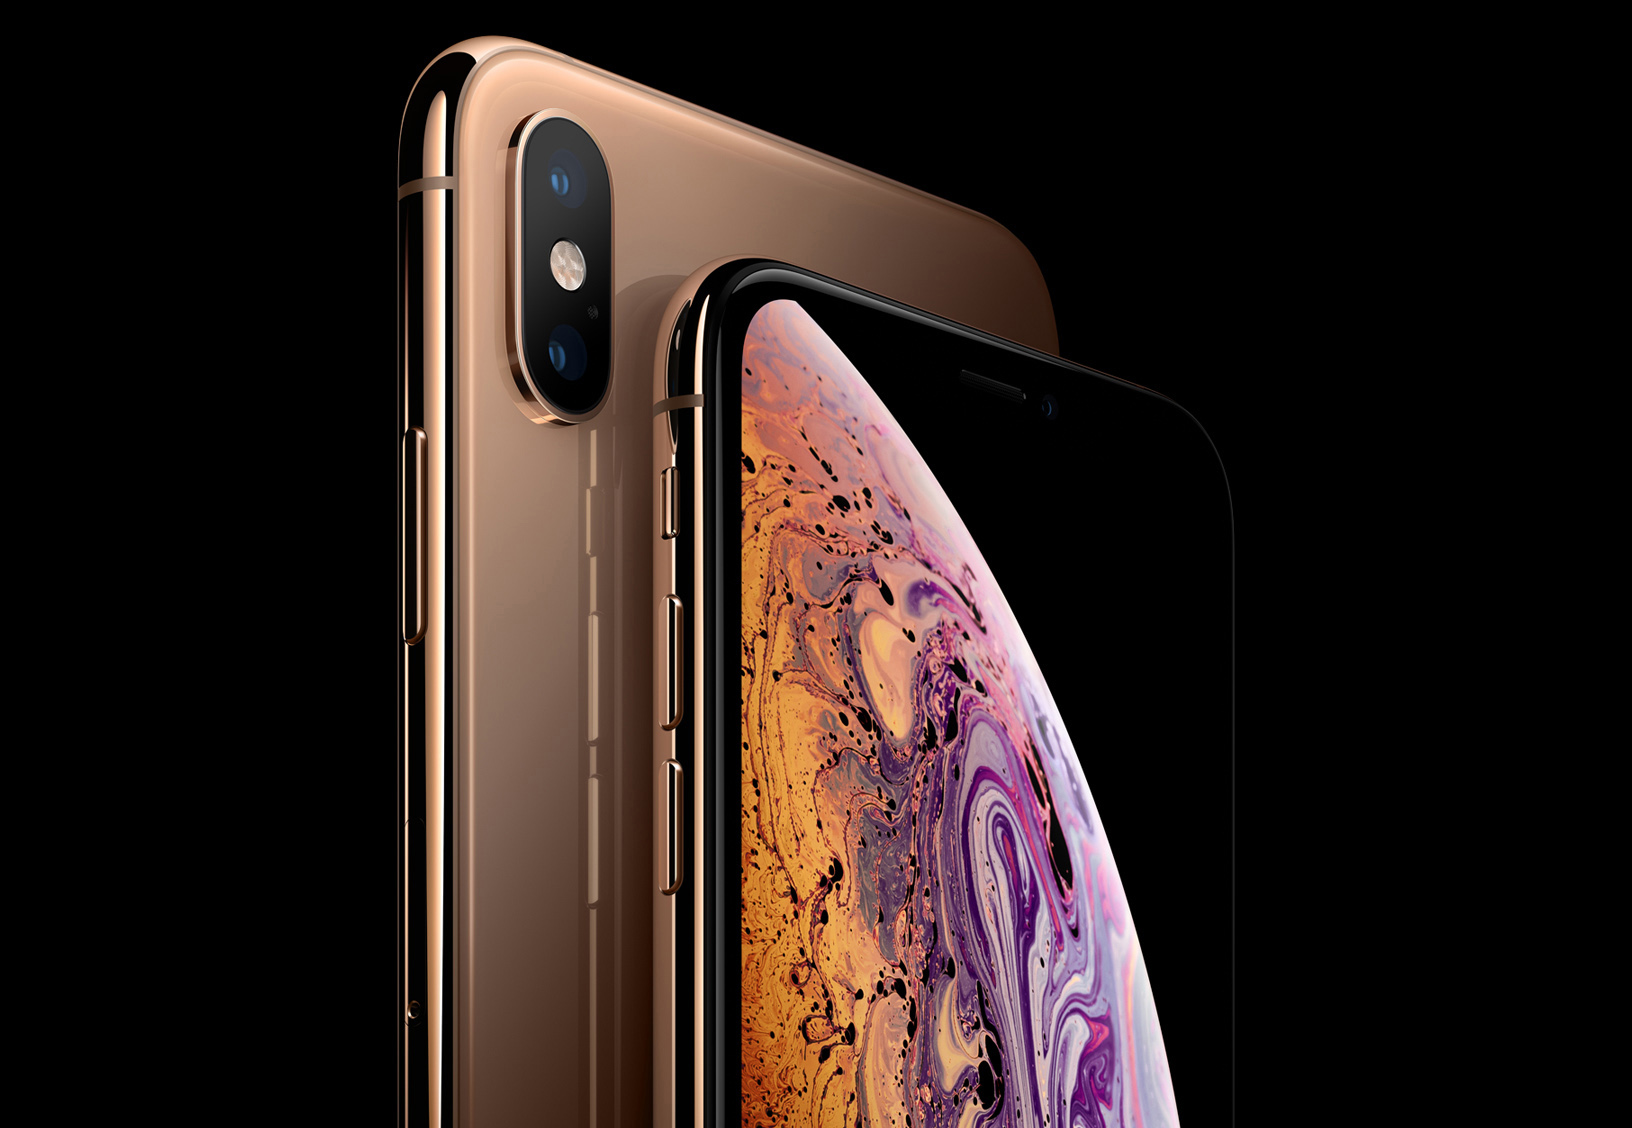 78825d57c081 Apple Reportedly Cutting iPhone Production by 10% for the January-March  Period Due to Waning Demand